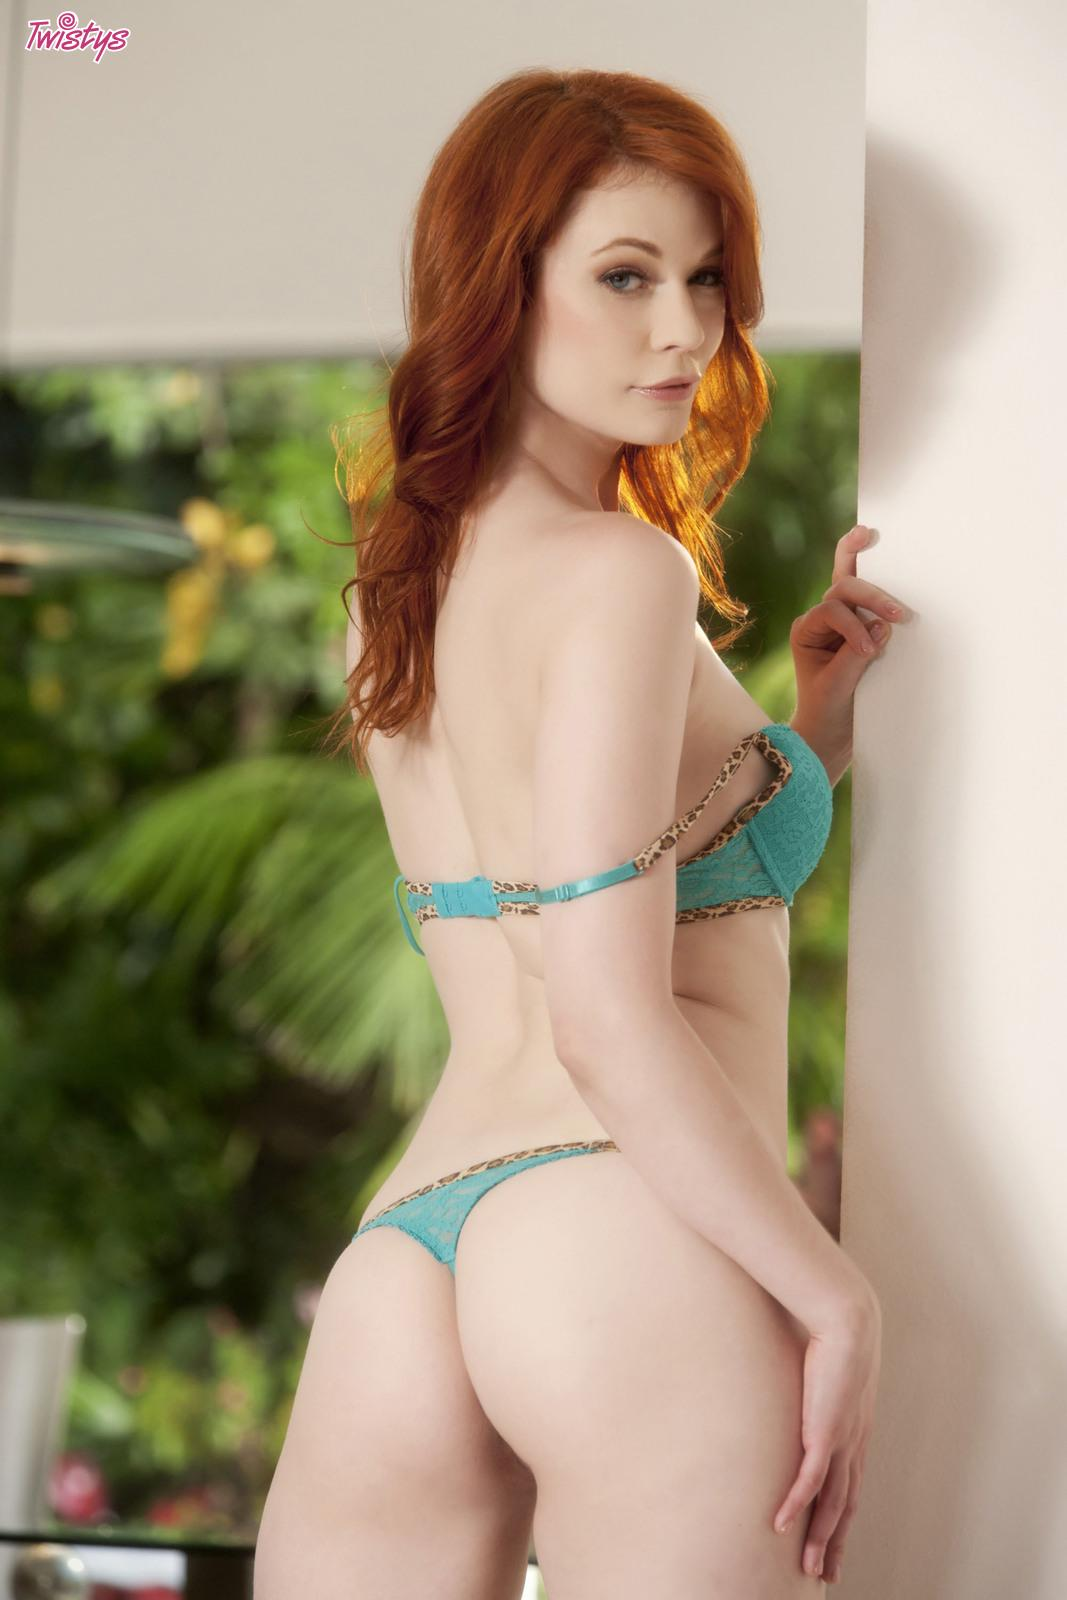 sage-texas-redhead-model-coke-dick-first-kick